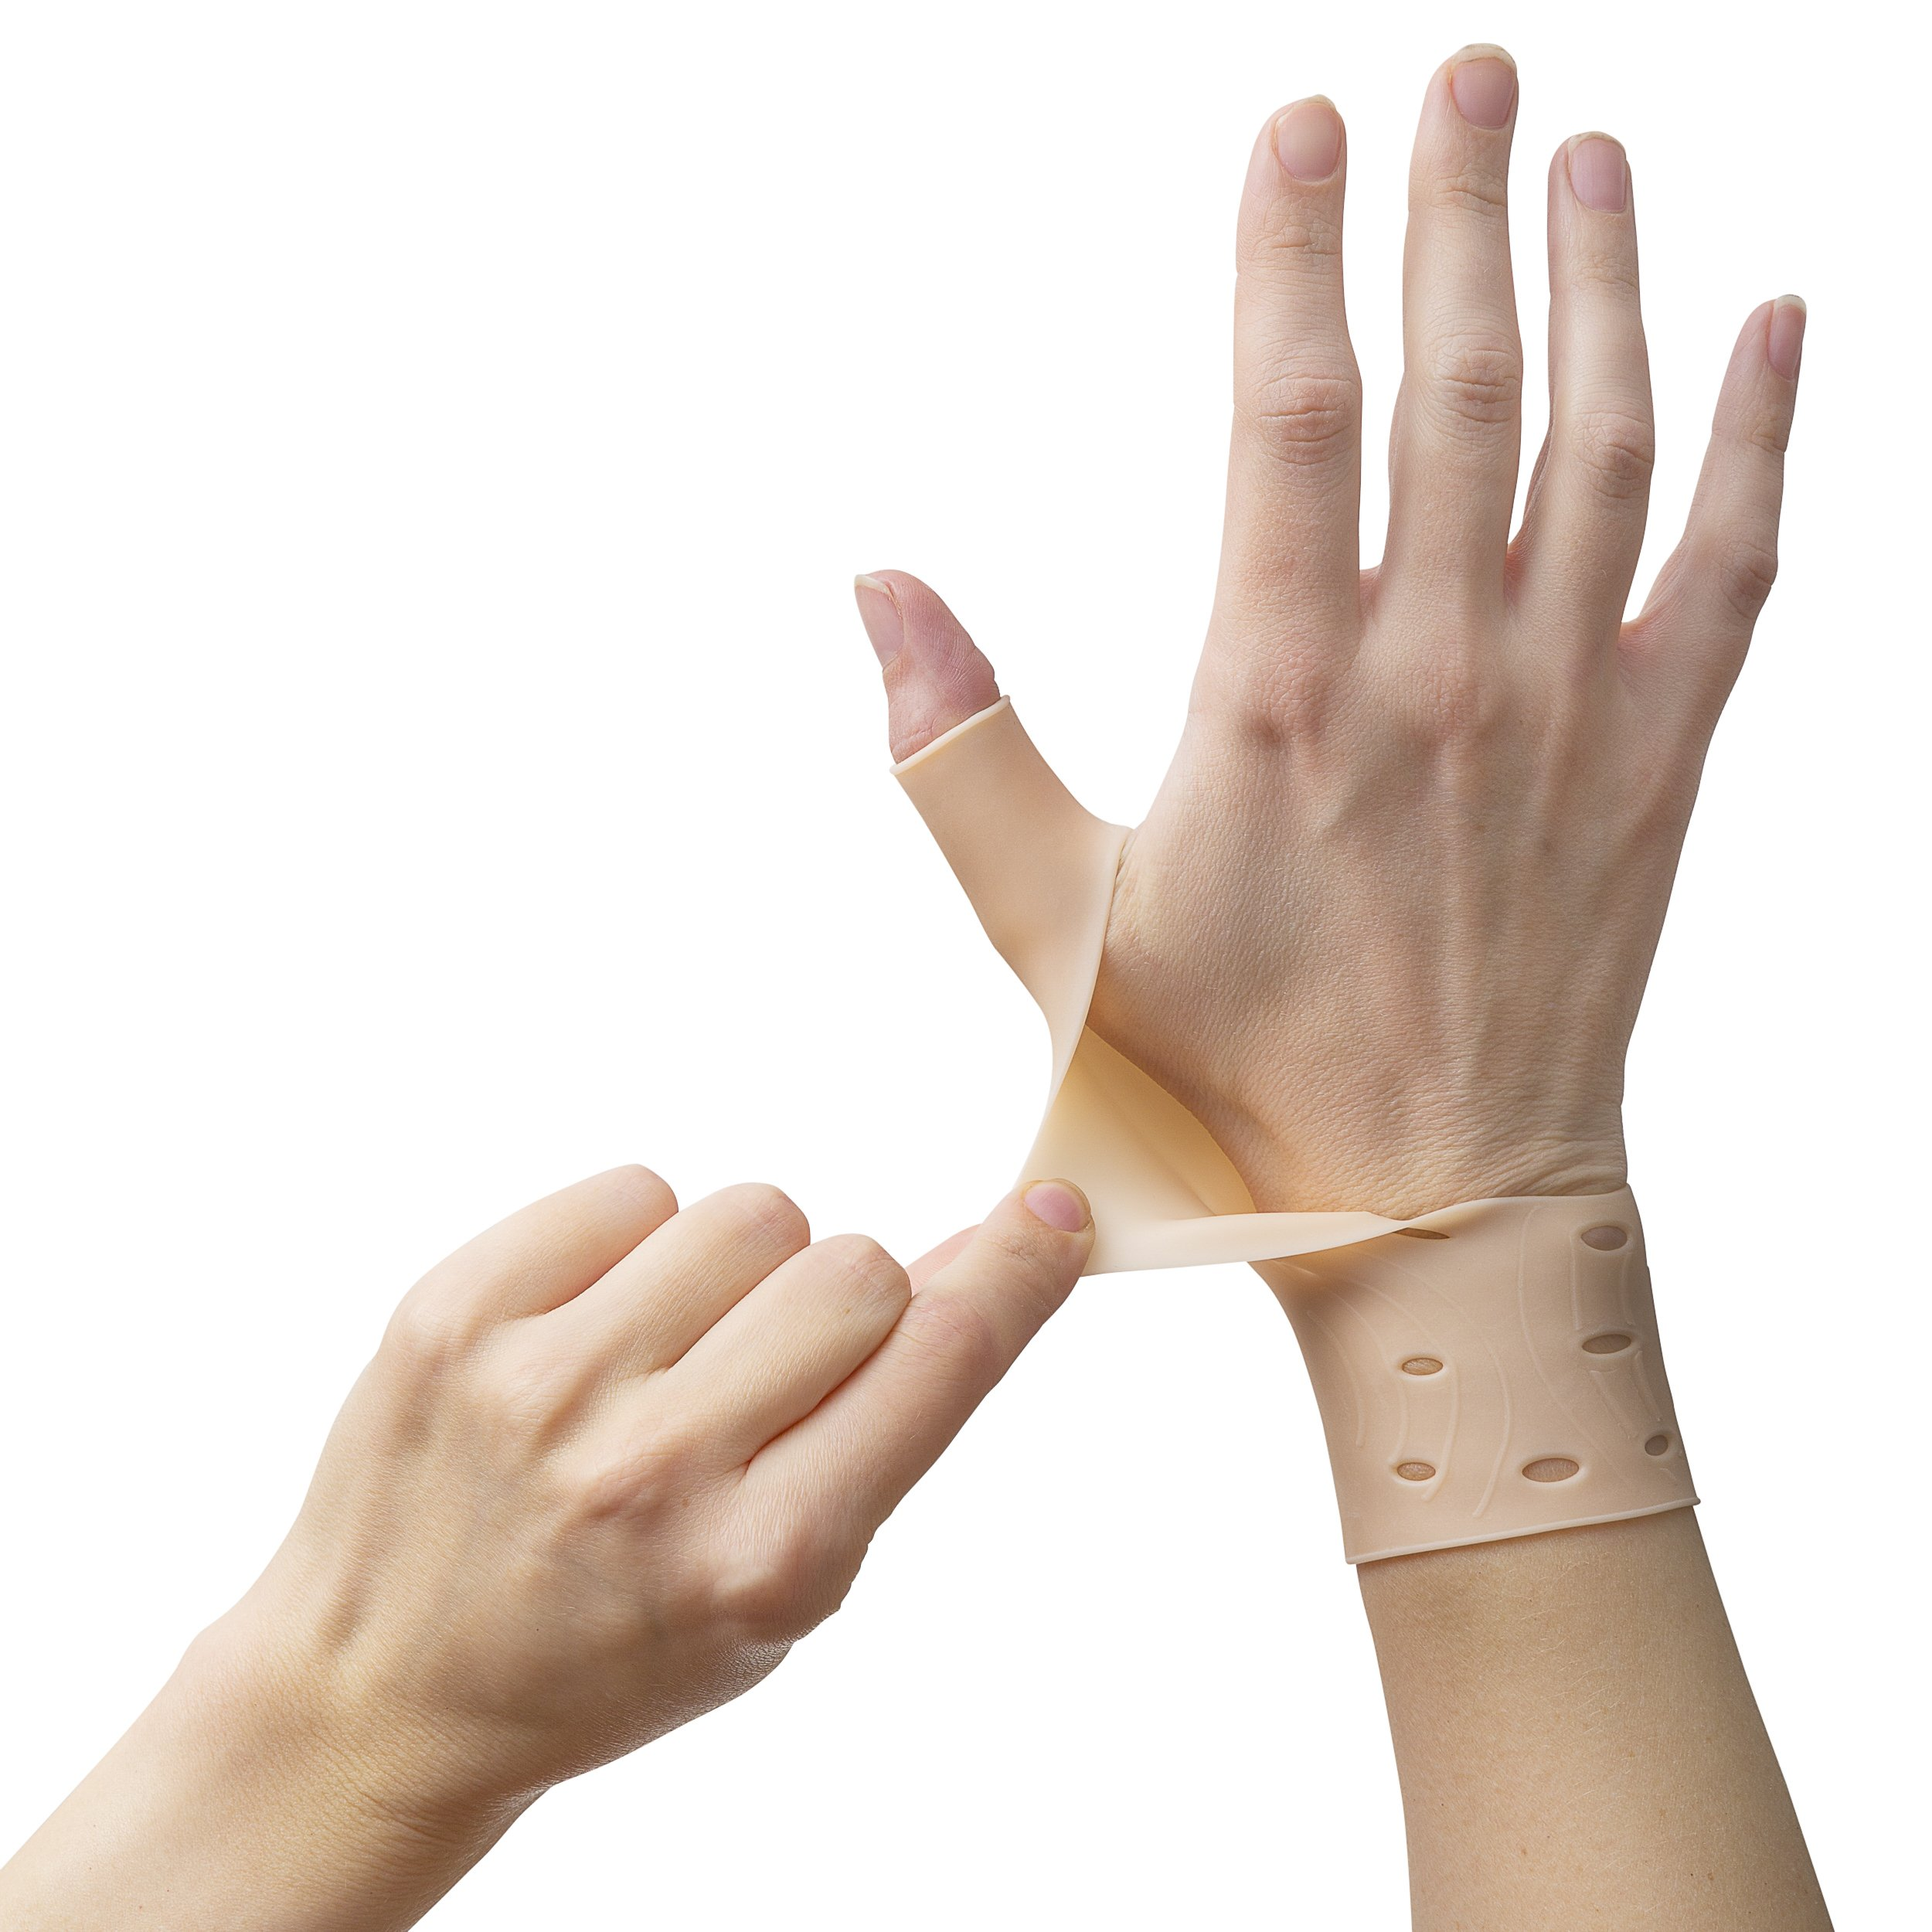 2 Breathable Gel Wrist & Thumb Support Braces for Right & Left Hand | Proven to Relieve Wrist & Thumb Pain Including Arthritis, Rheumatism, Carpal Tunnel | Soft, Comfortable & Light Weight by Excelyfe (Image #9)